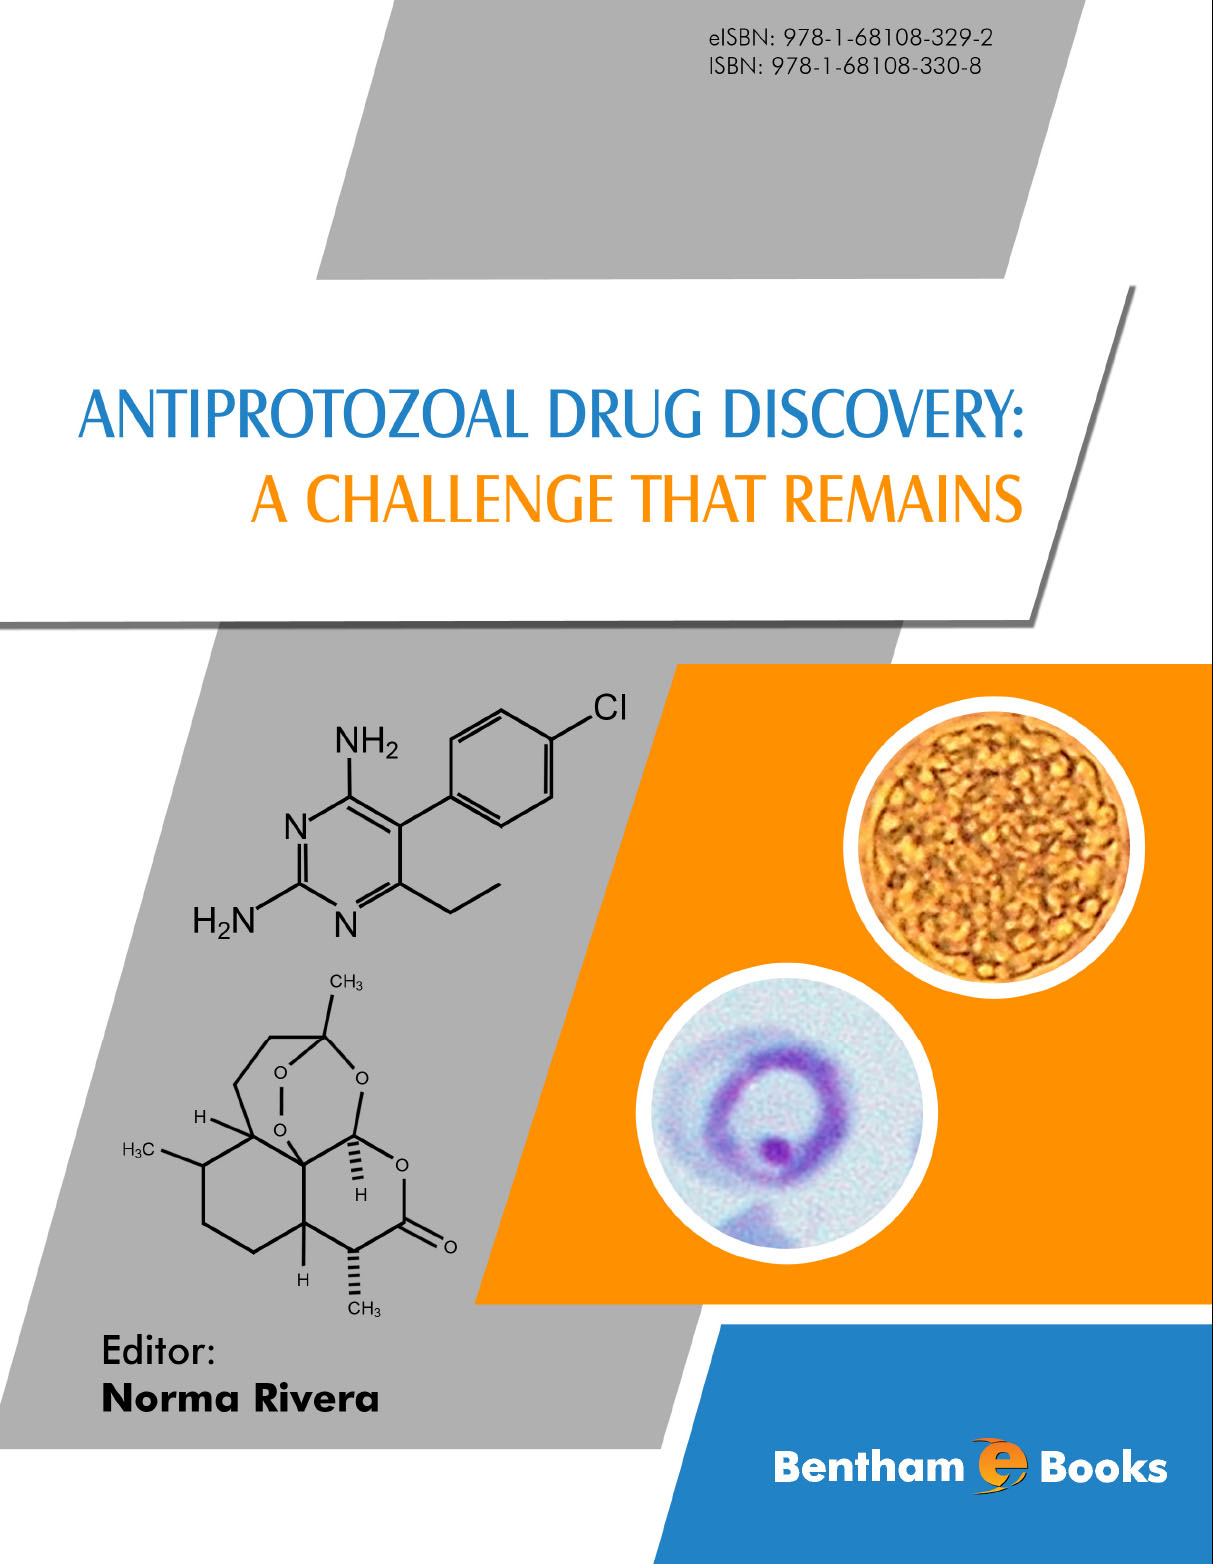 Antiprotozoal Drug Discovery: A Challenge That Remains